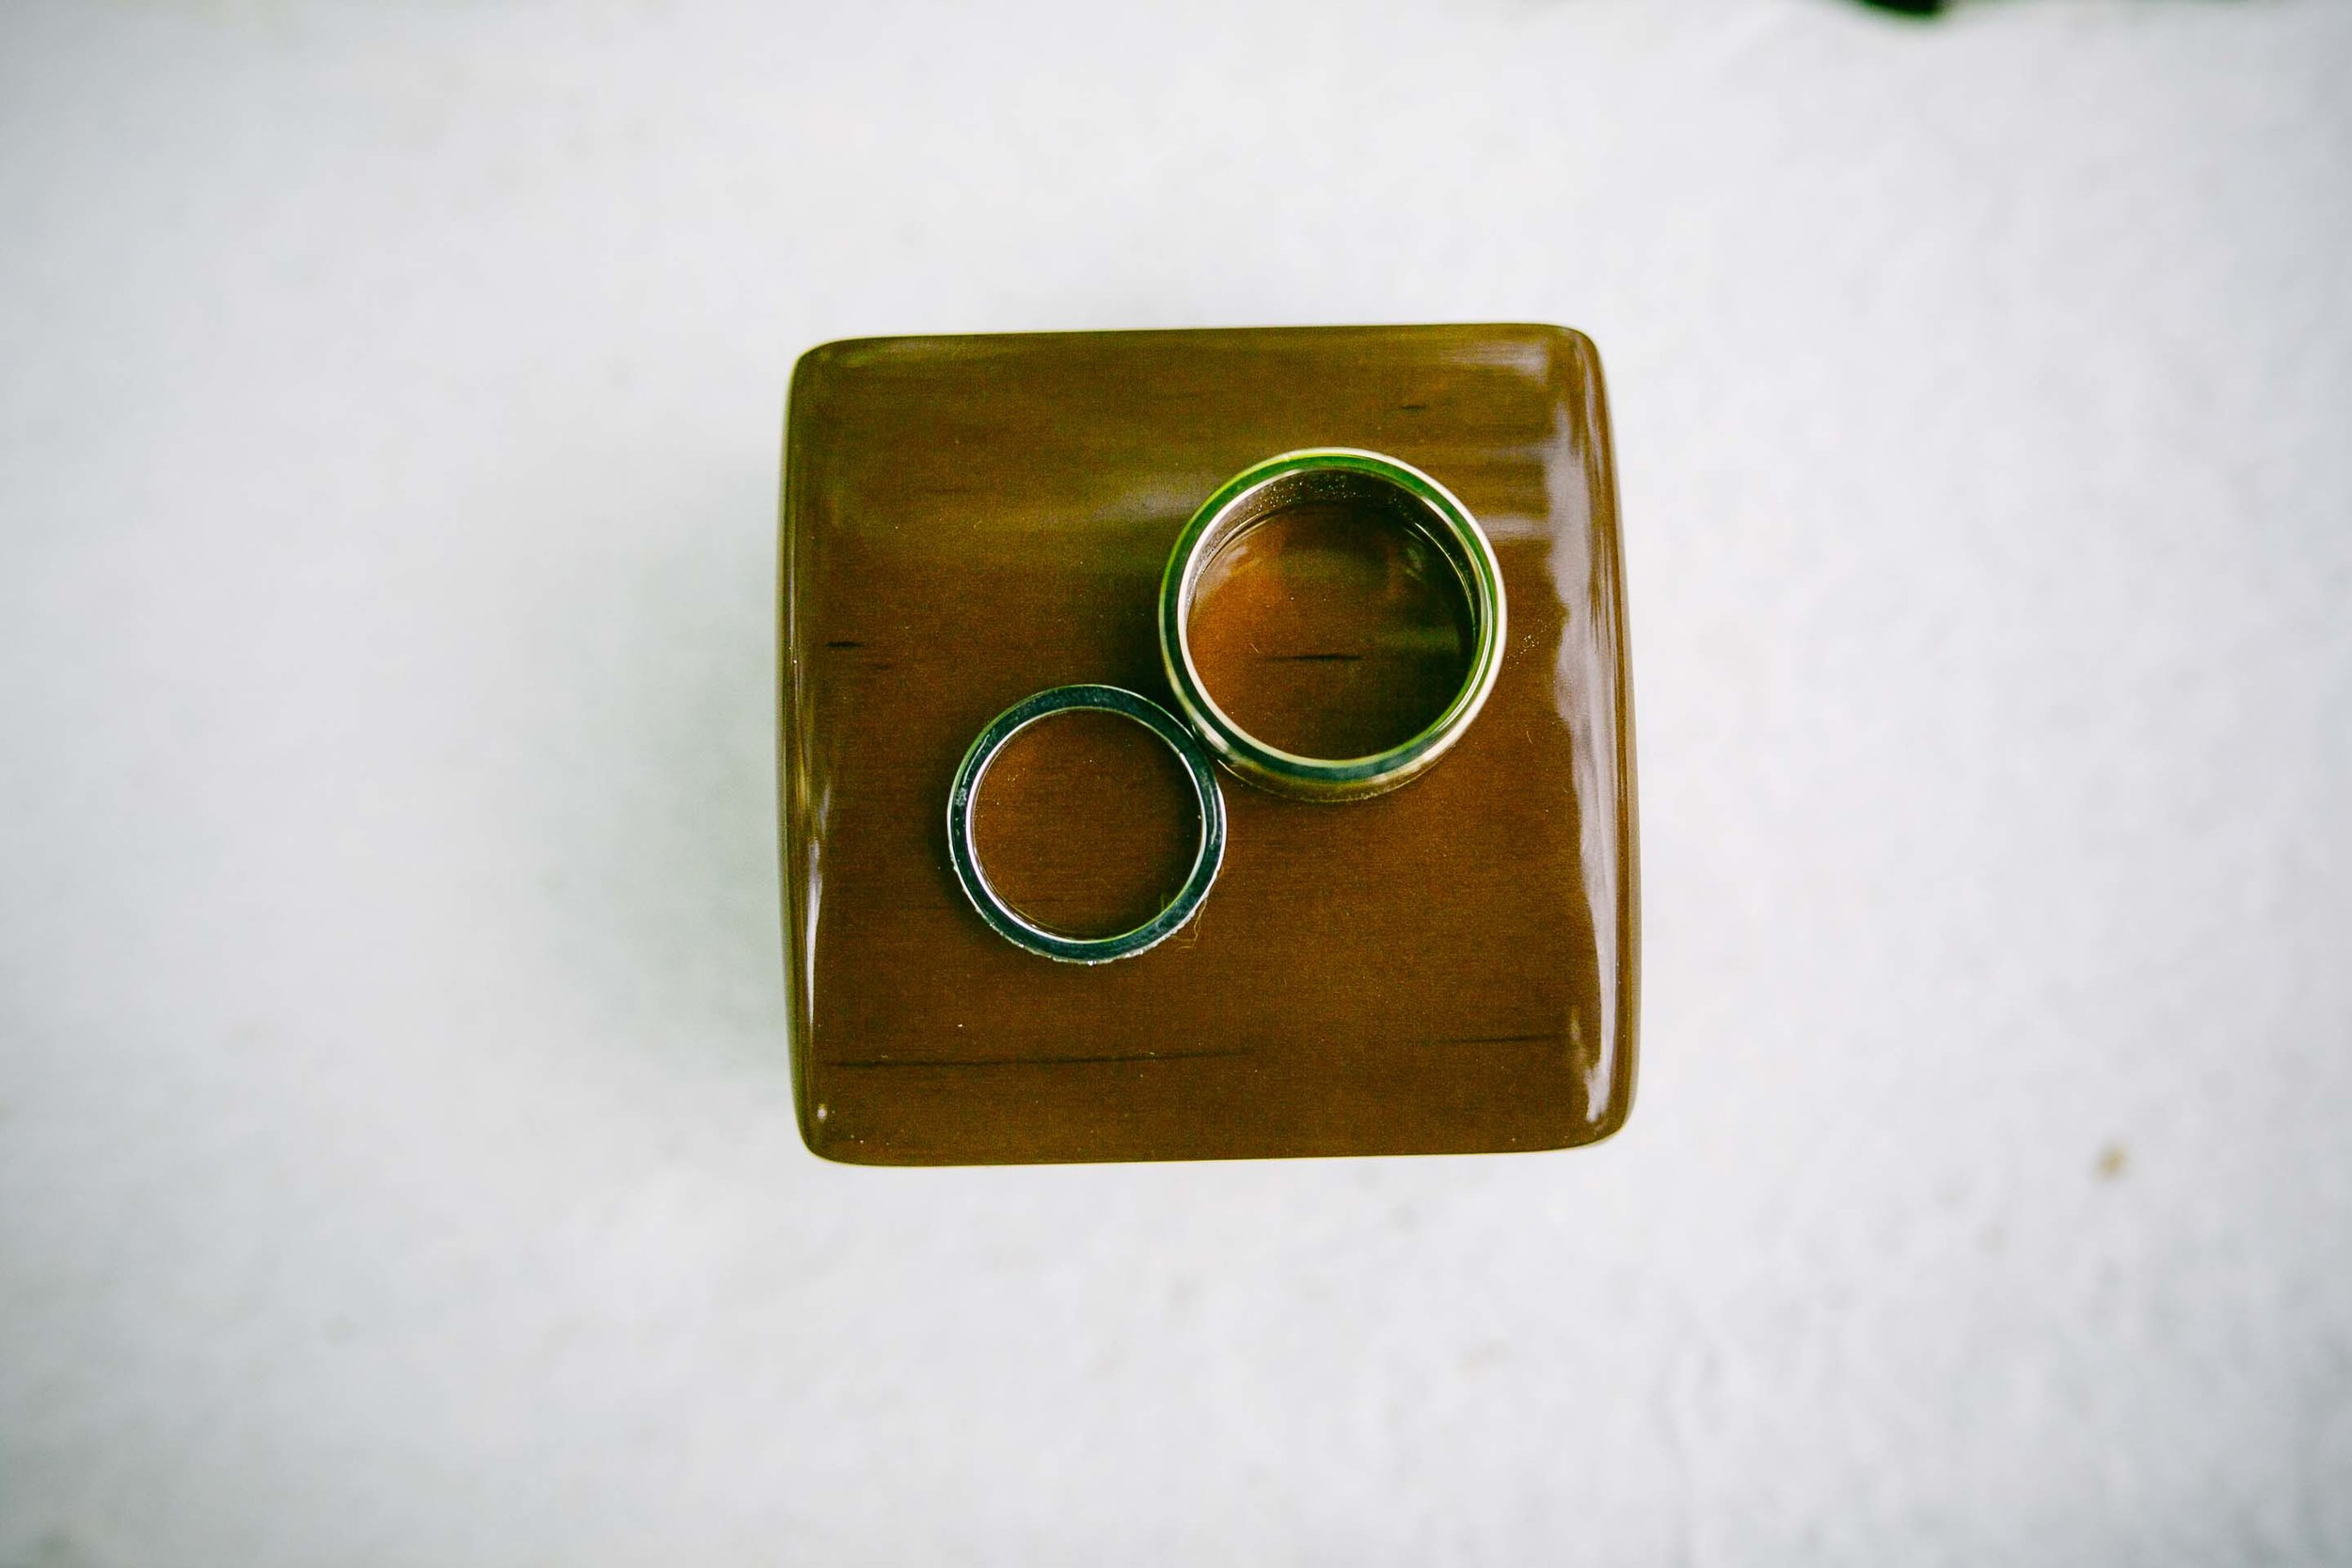 The wedding rings on their box